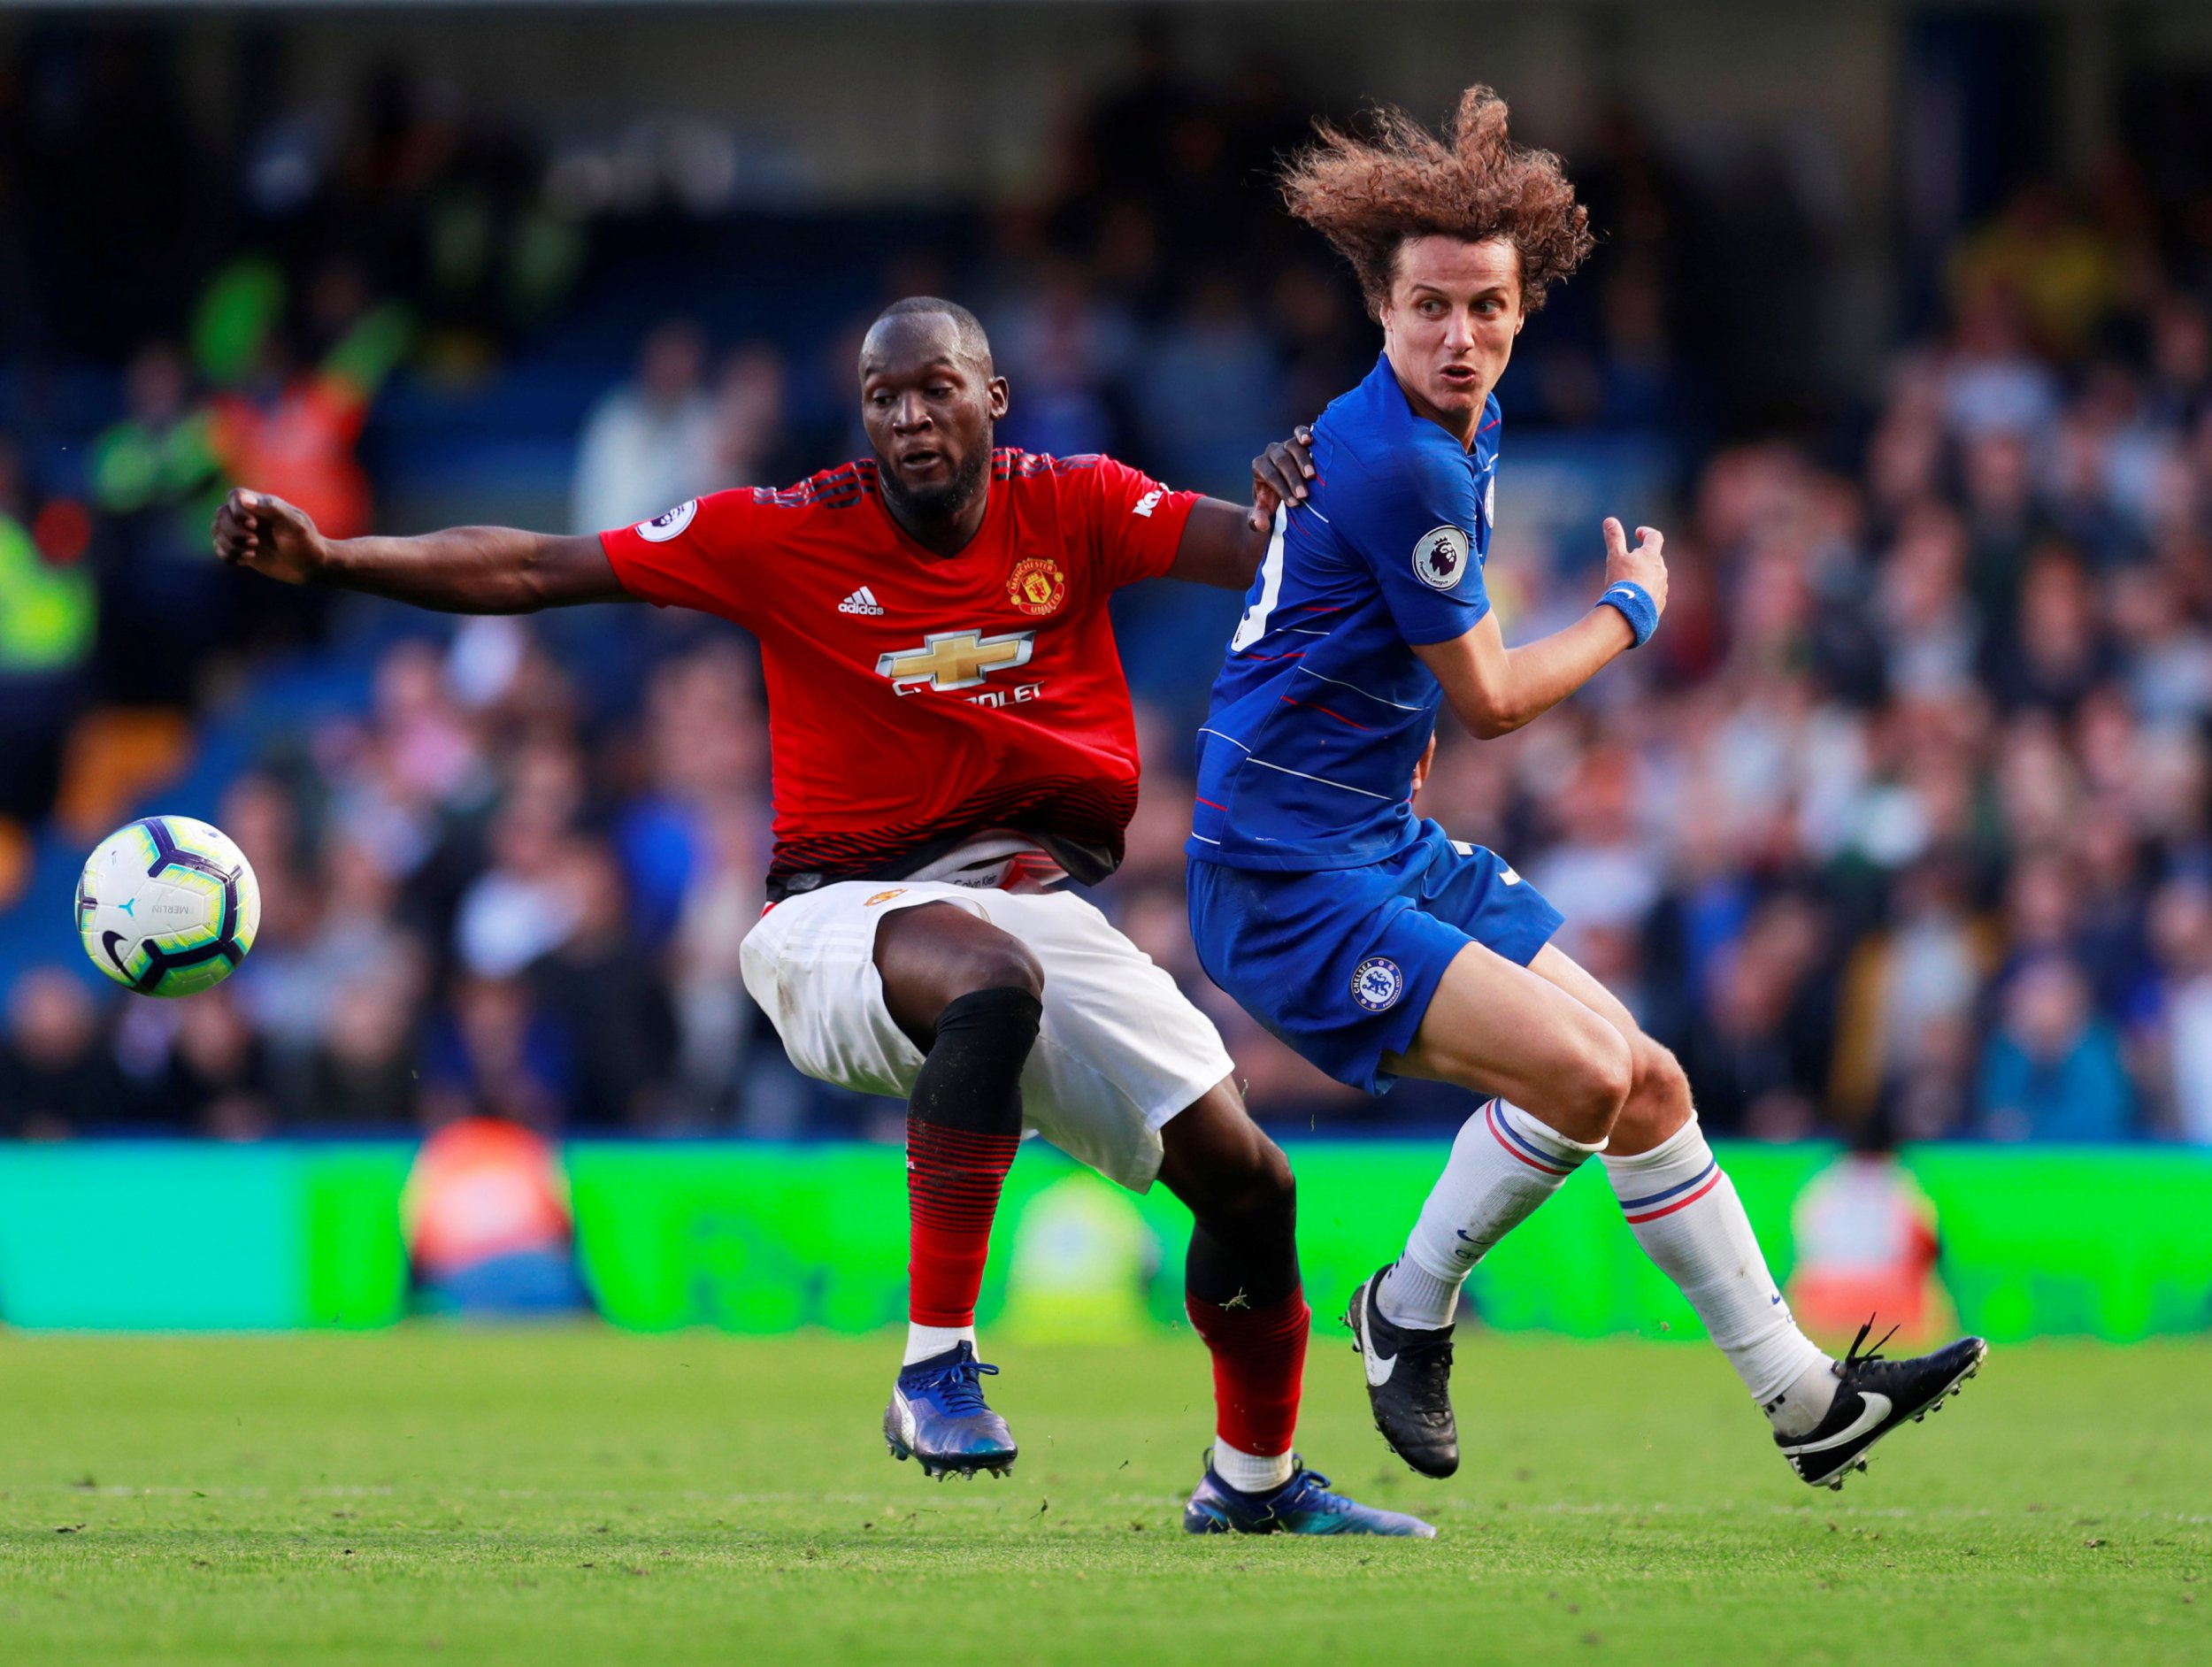 "Soccer Football - Premier League - Chelsea v Manchester United - Stamford Bridge, London, Britain - October 20, 2018 Manchester United's Romelu Lukaku in action with Chelsea's David Luiz Action Images via Reuters/Andrew Couldridge EDITORIAL USE ONLY. No use with unauthorized audio, video, data, fixture lists, club/league logos or ""live"" services. Online in-match use limited to 75 images, no video emulation. No use in betting, games or single club/league/player publications. Please contact your account representative for further details."